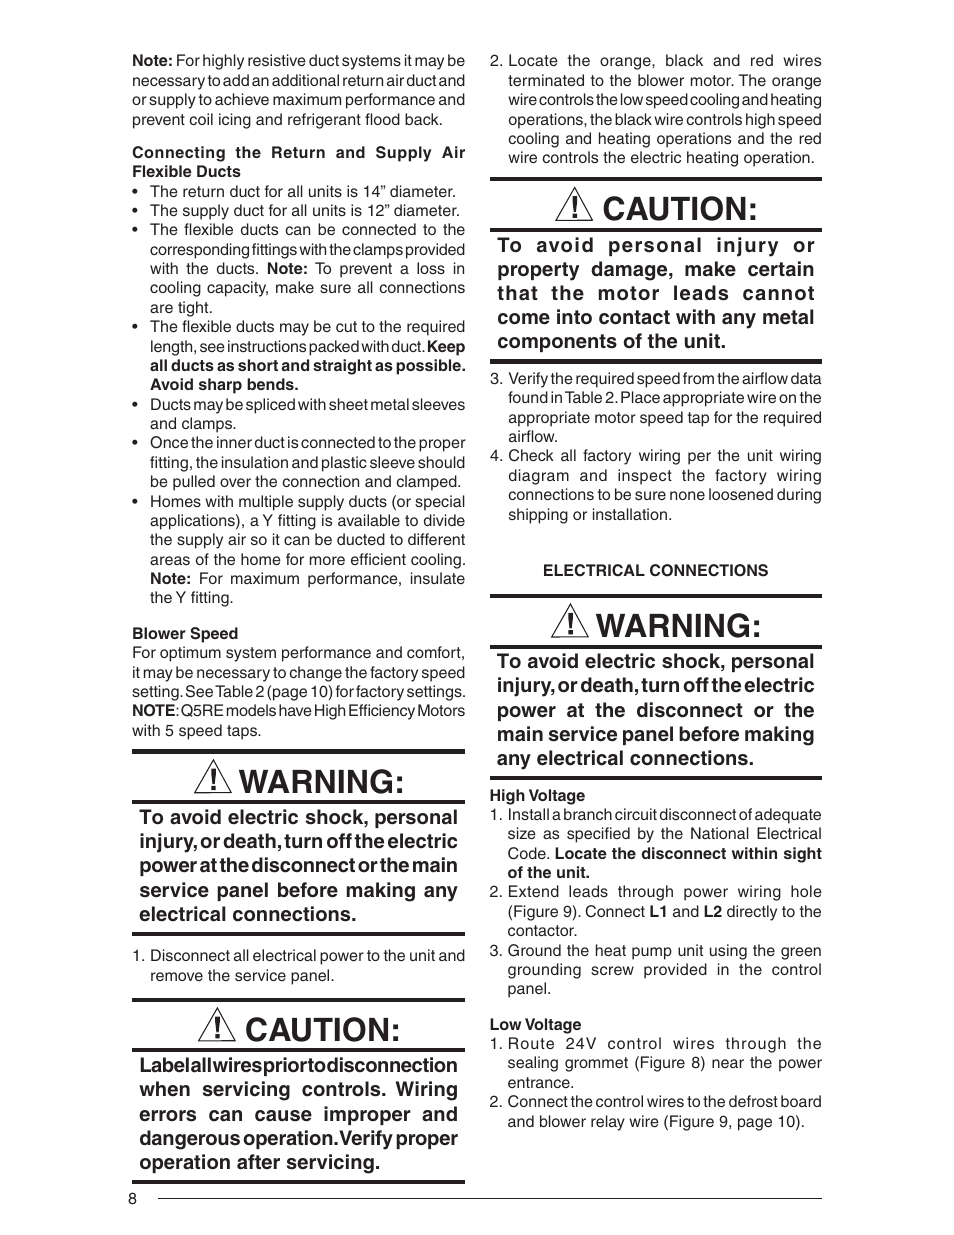 medium resolution of warning caution nordyne single package heat pump r 410a user manual page 8 20